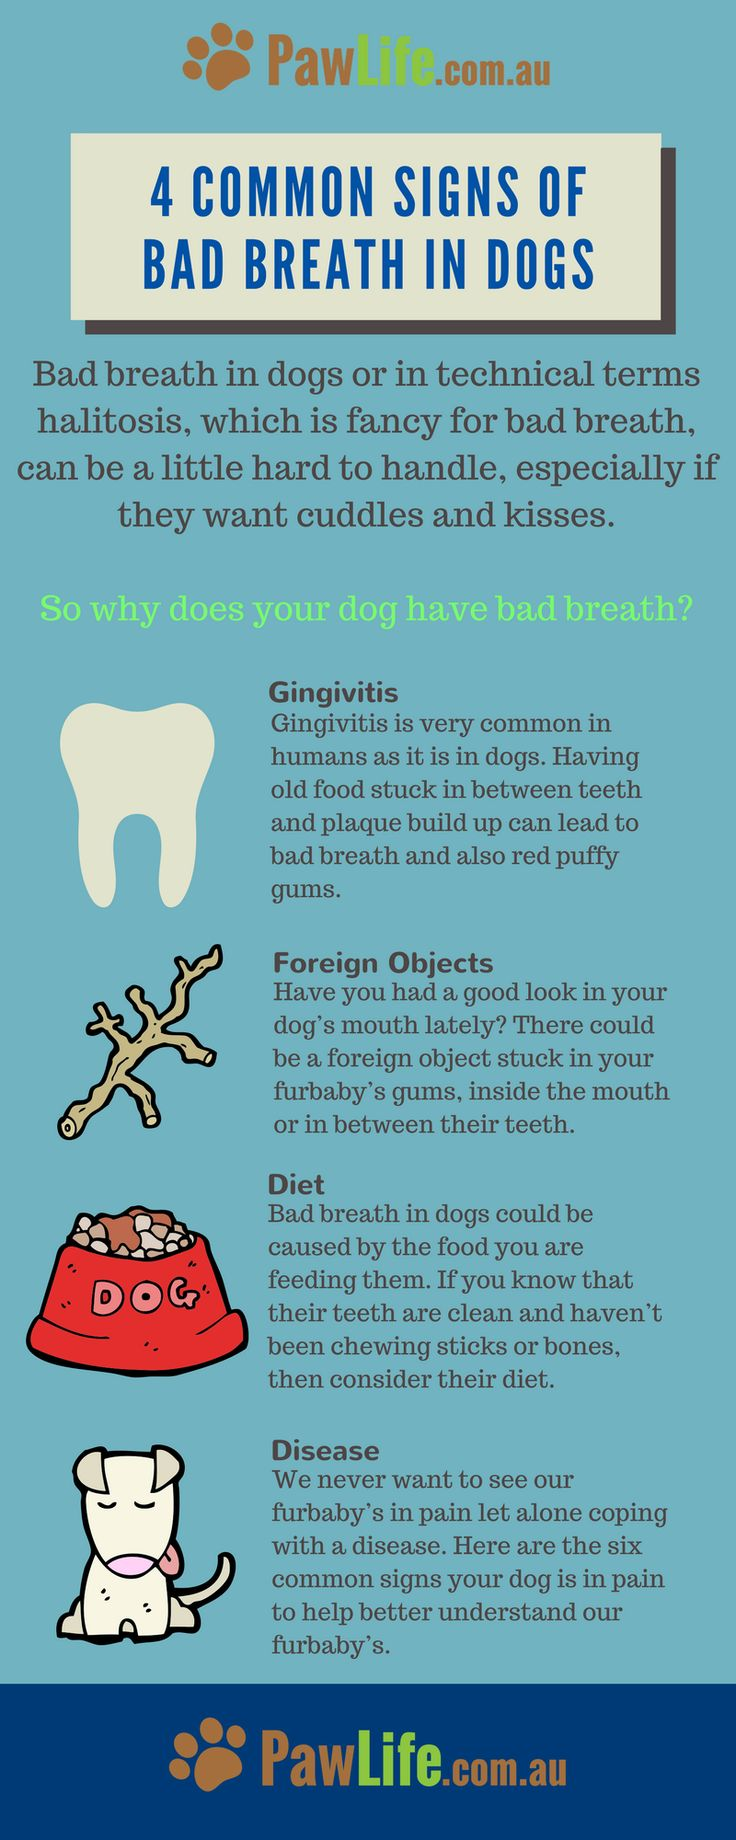 Bad breath in dogs can be difficult. Here are the common signs of bad breath in dogs.